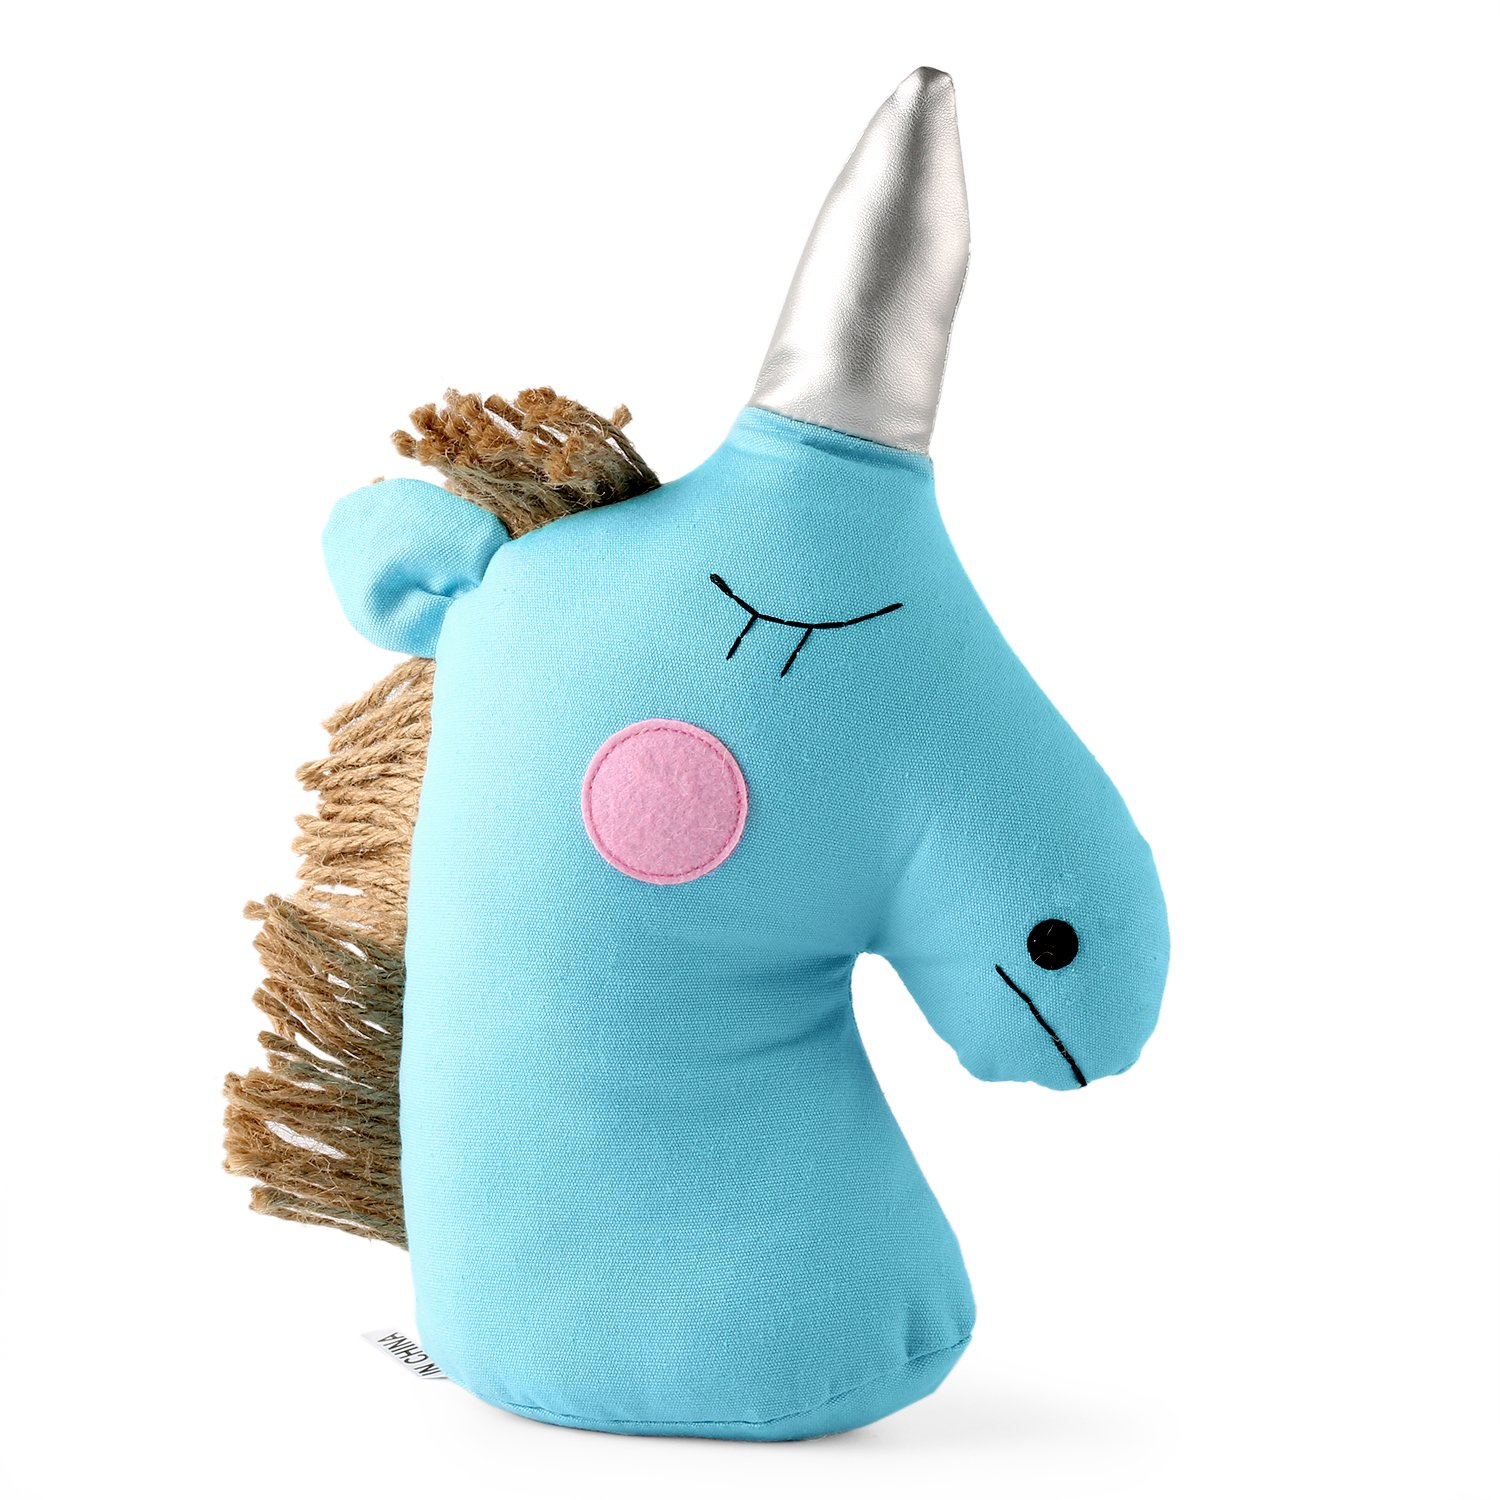 meowtastic Unicorn Stuffed Animal Blue 11.5 Inches Party Favors